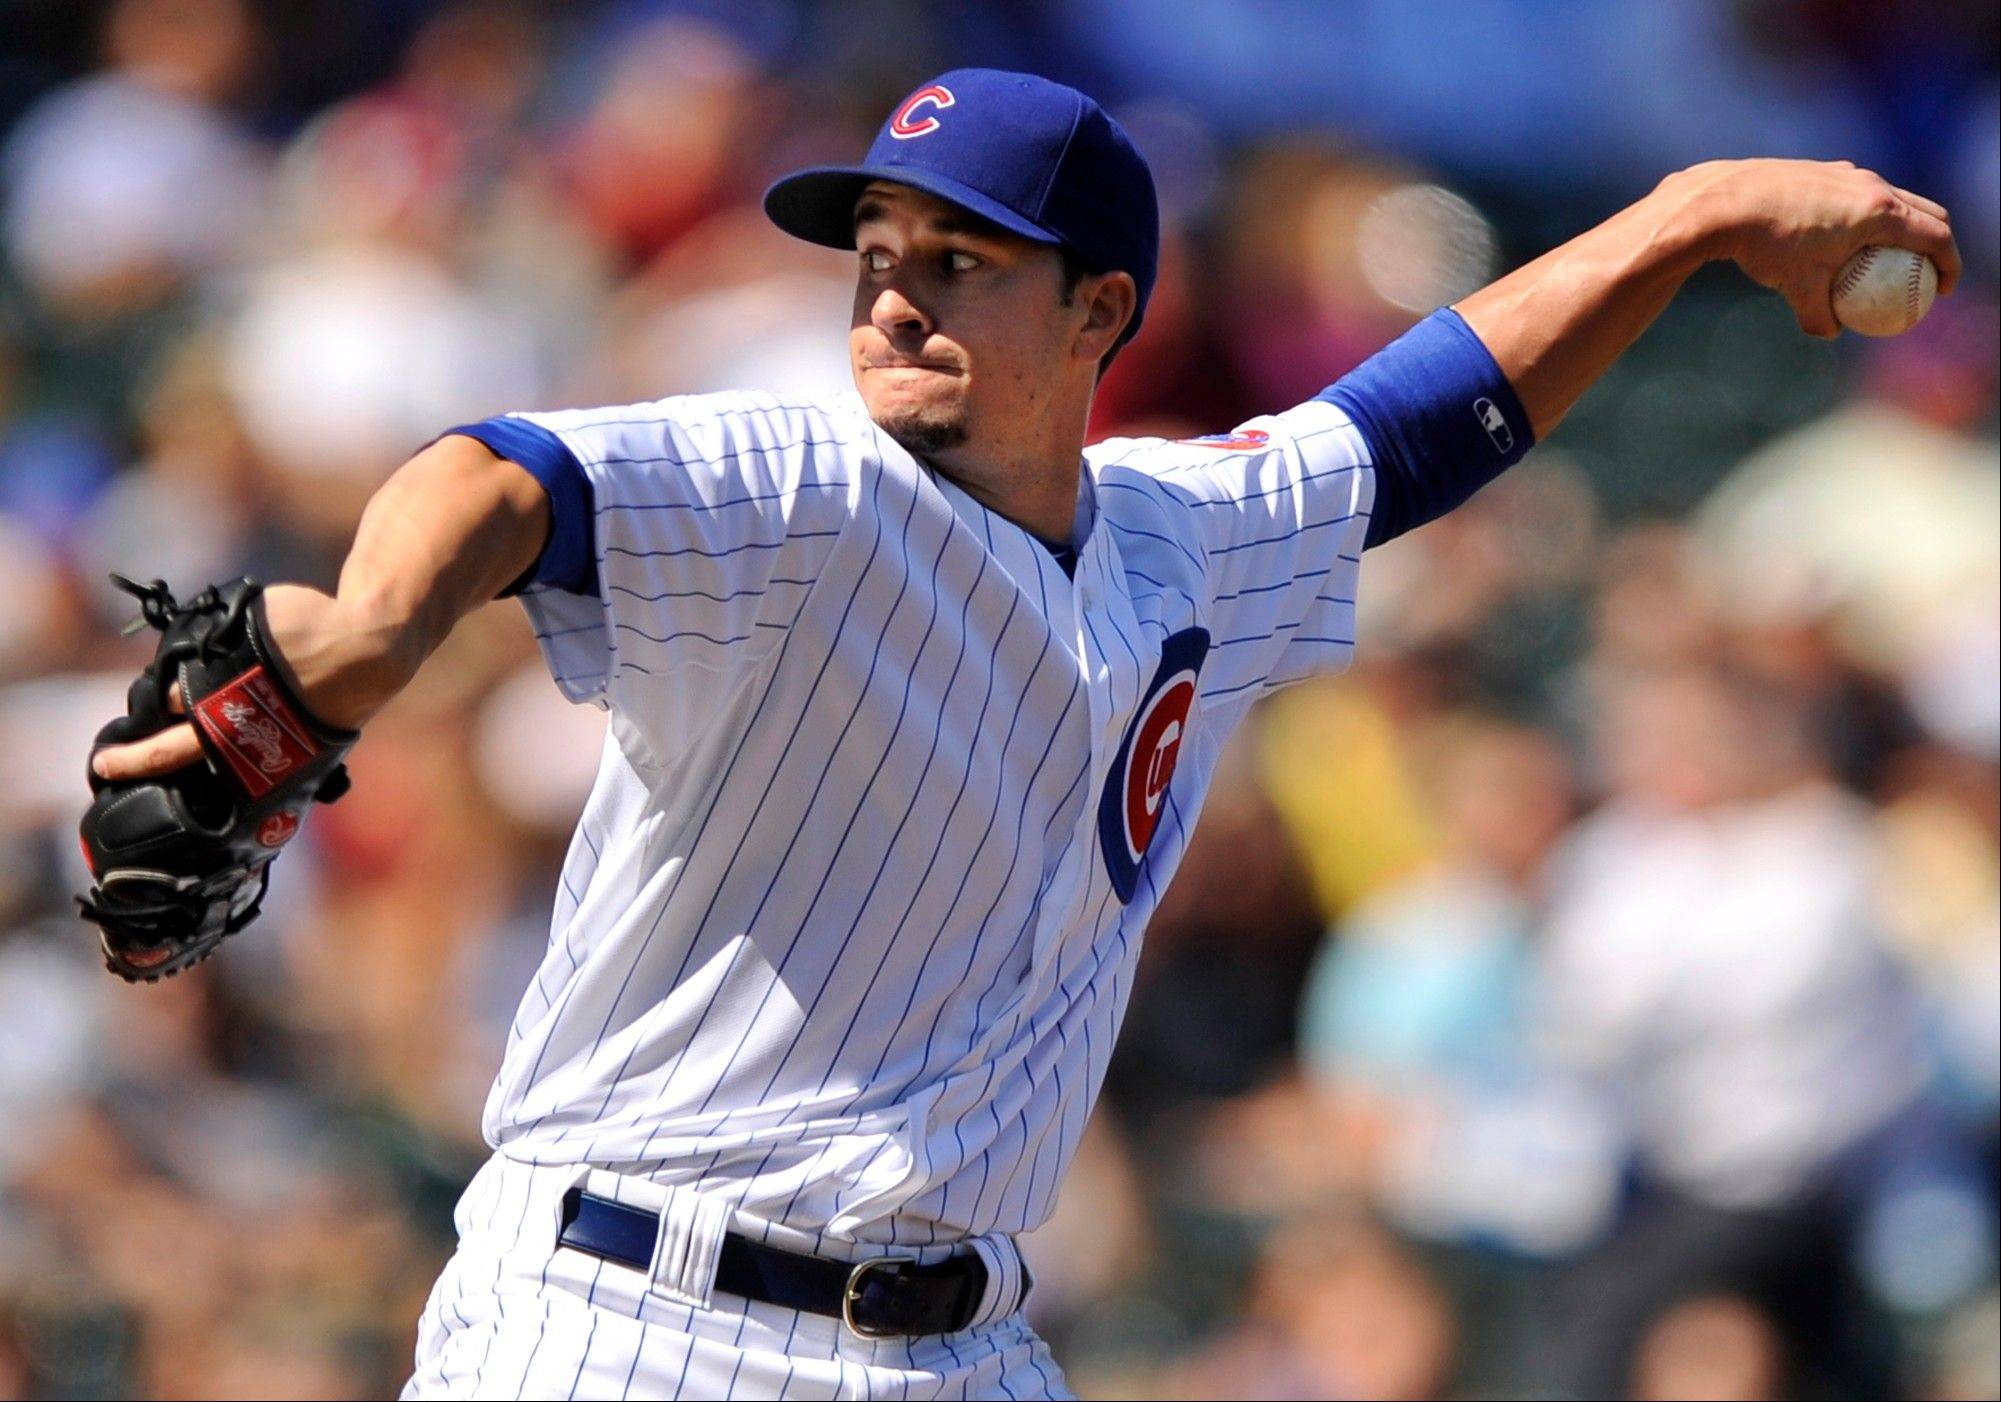 Cubs starter Chris Rusin delivers a pitch against the Pirates on Friday afternoon at Wrigley Field. Rusin worked 5 innings and earned his first major-league win as the Cubs beat the Pirates 7-4.